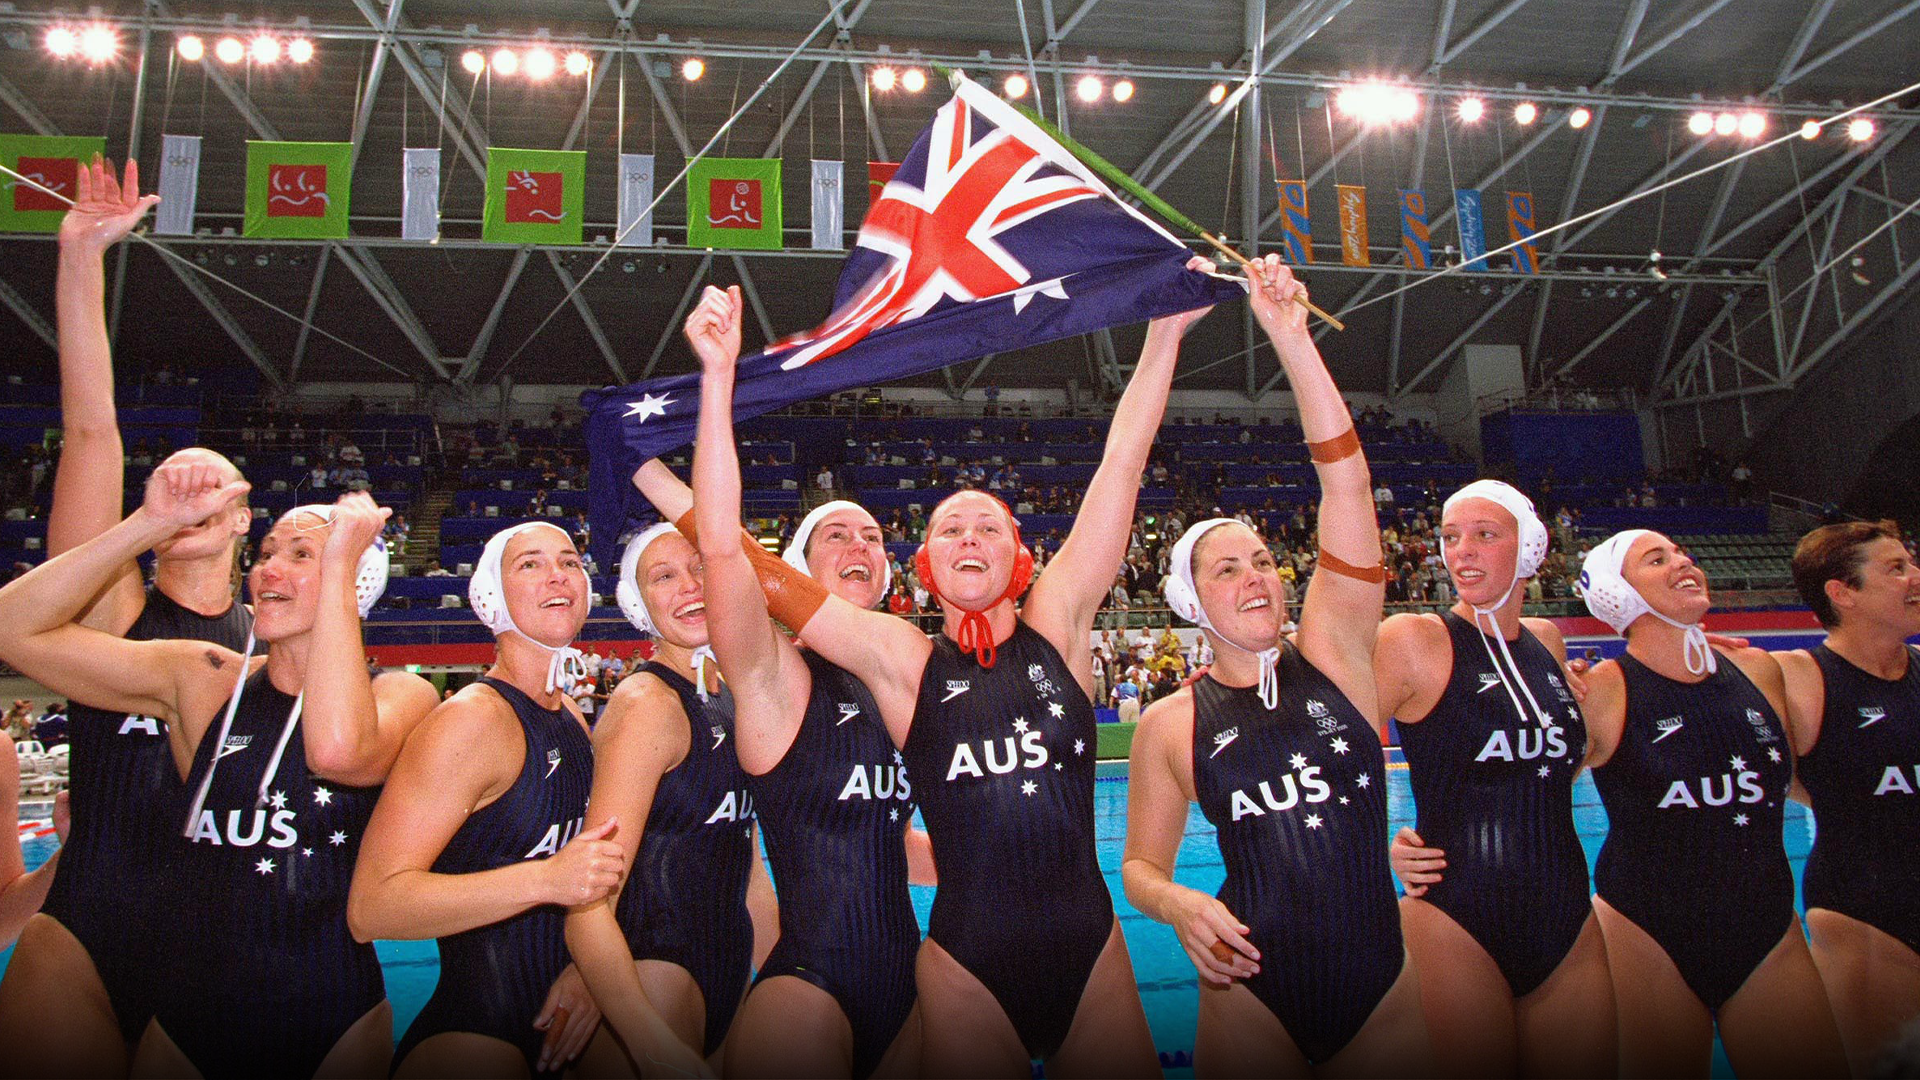 Sydney 2000: The incredible story behind Australia's Women's Water Polo gold medal at the Sydney Olympics